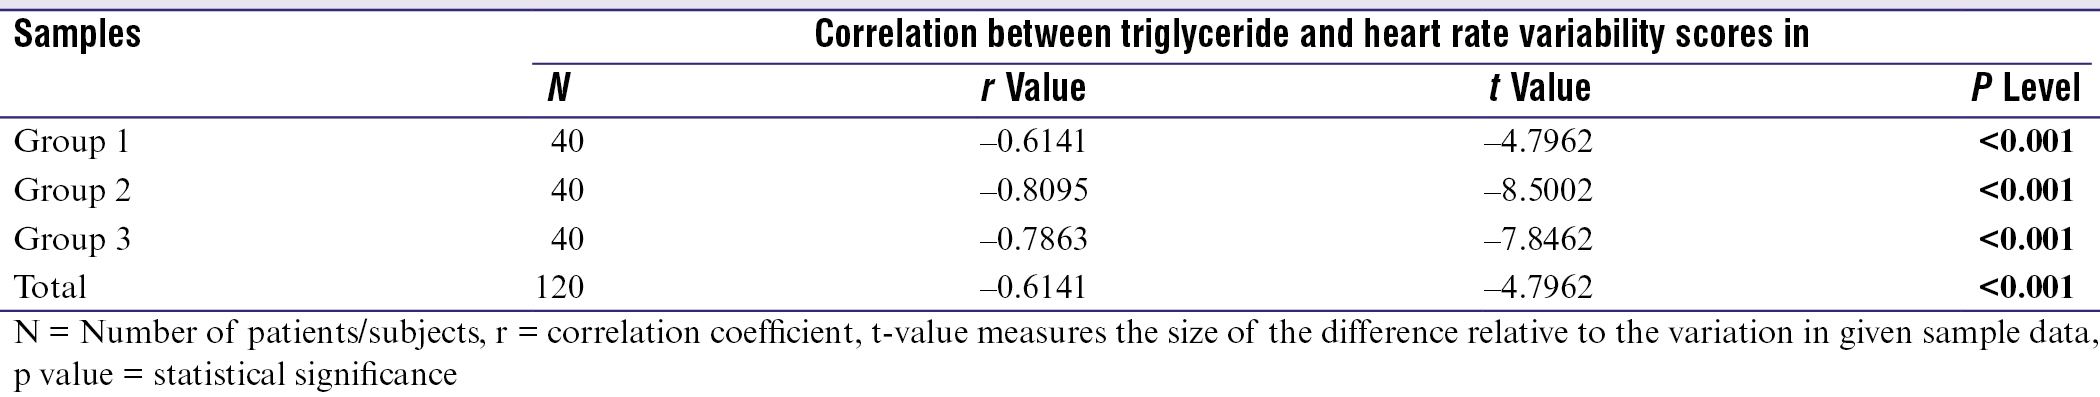 Table 4: Correlation between triglyceride level and heart rate variability scores in three groups by Karl Pearson's correlation coefficient